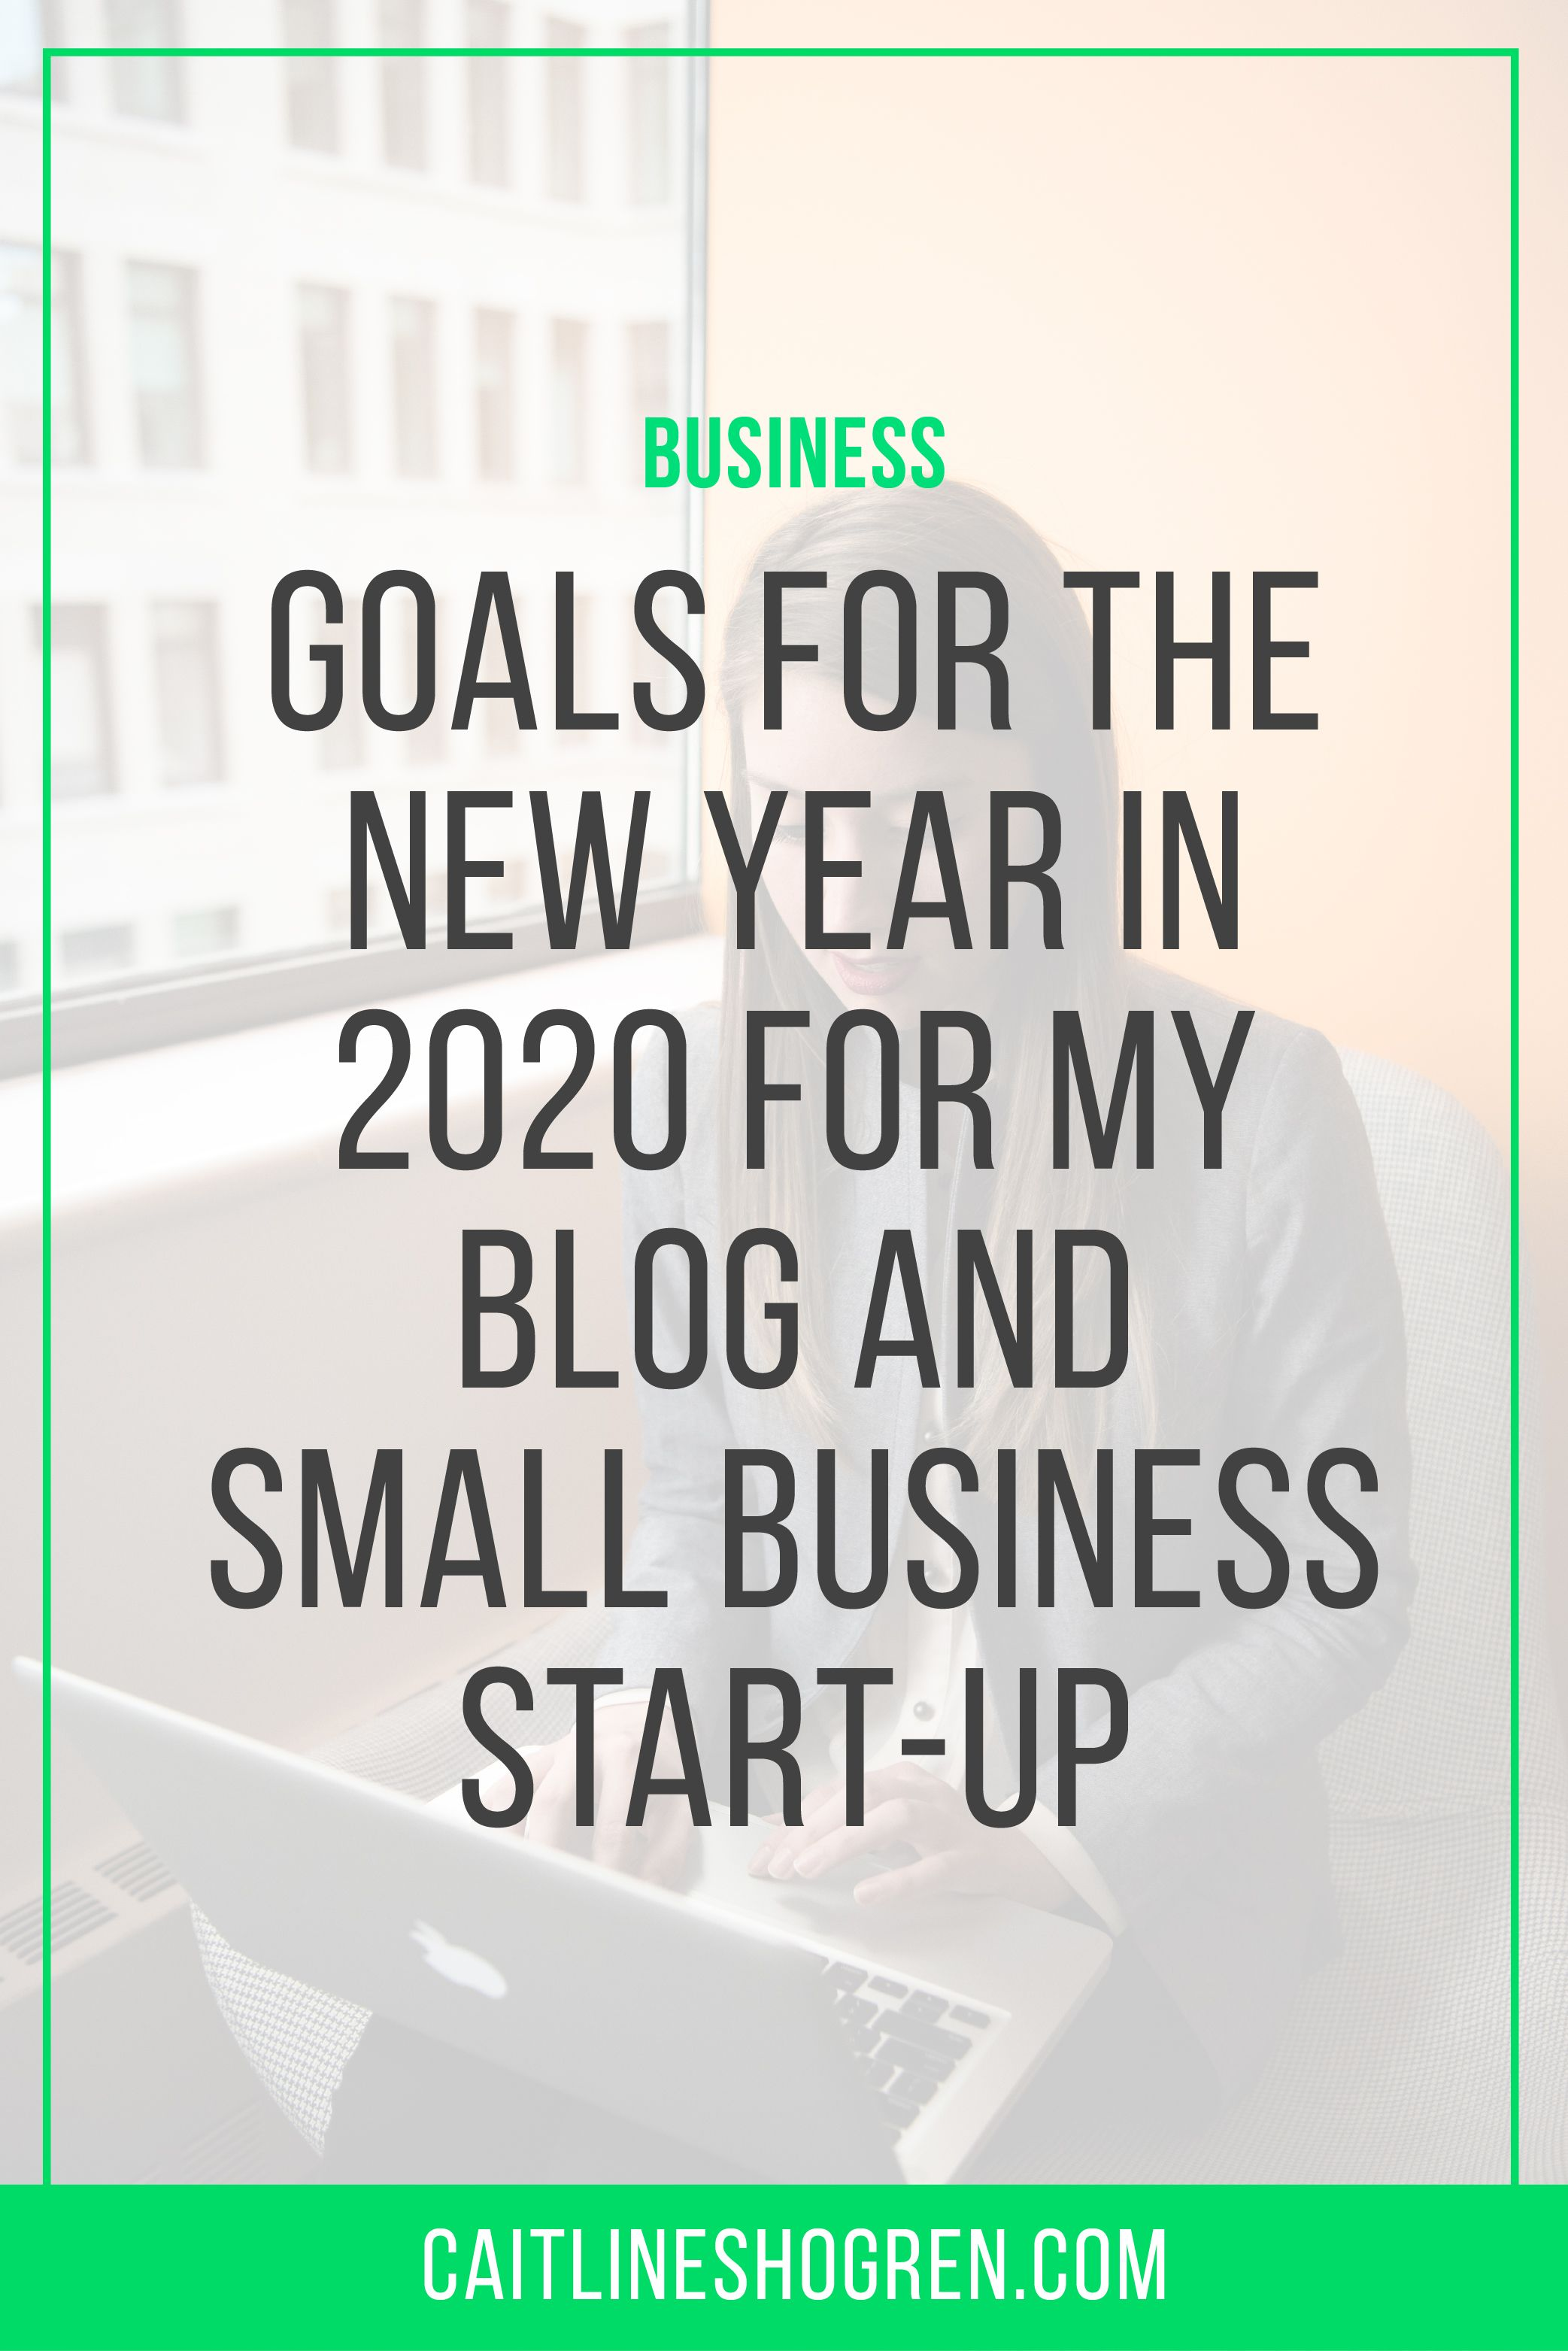 My small business startup goals for my business blog